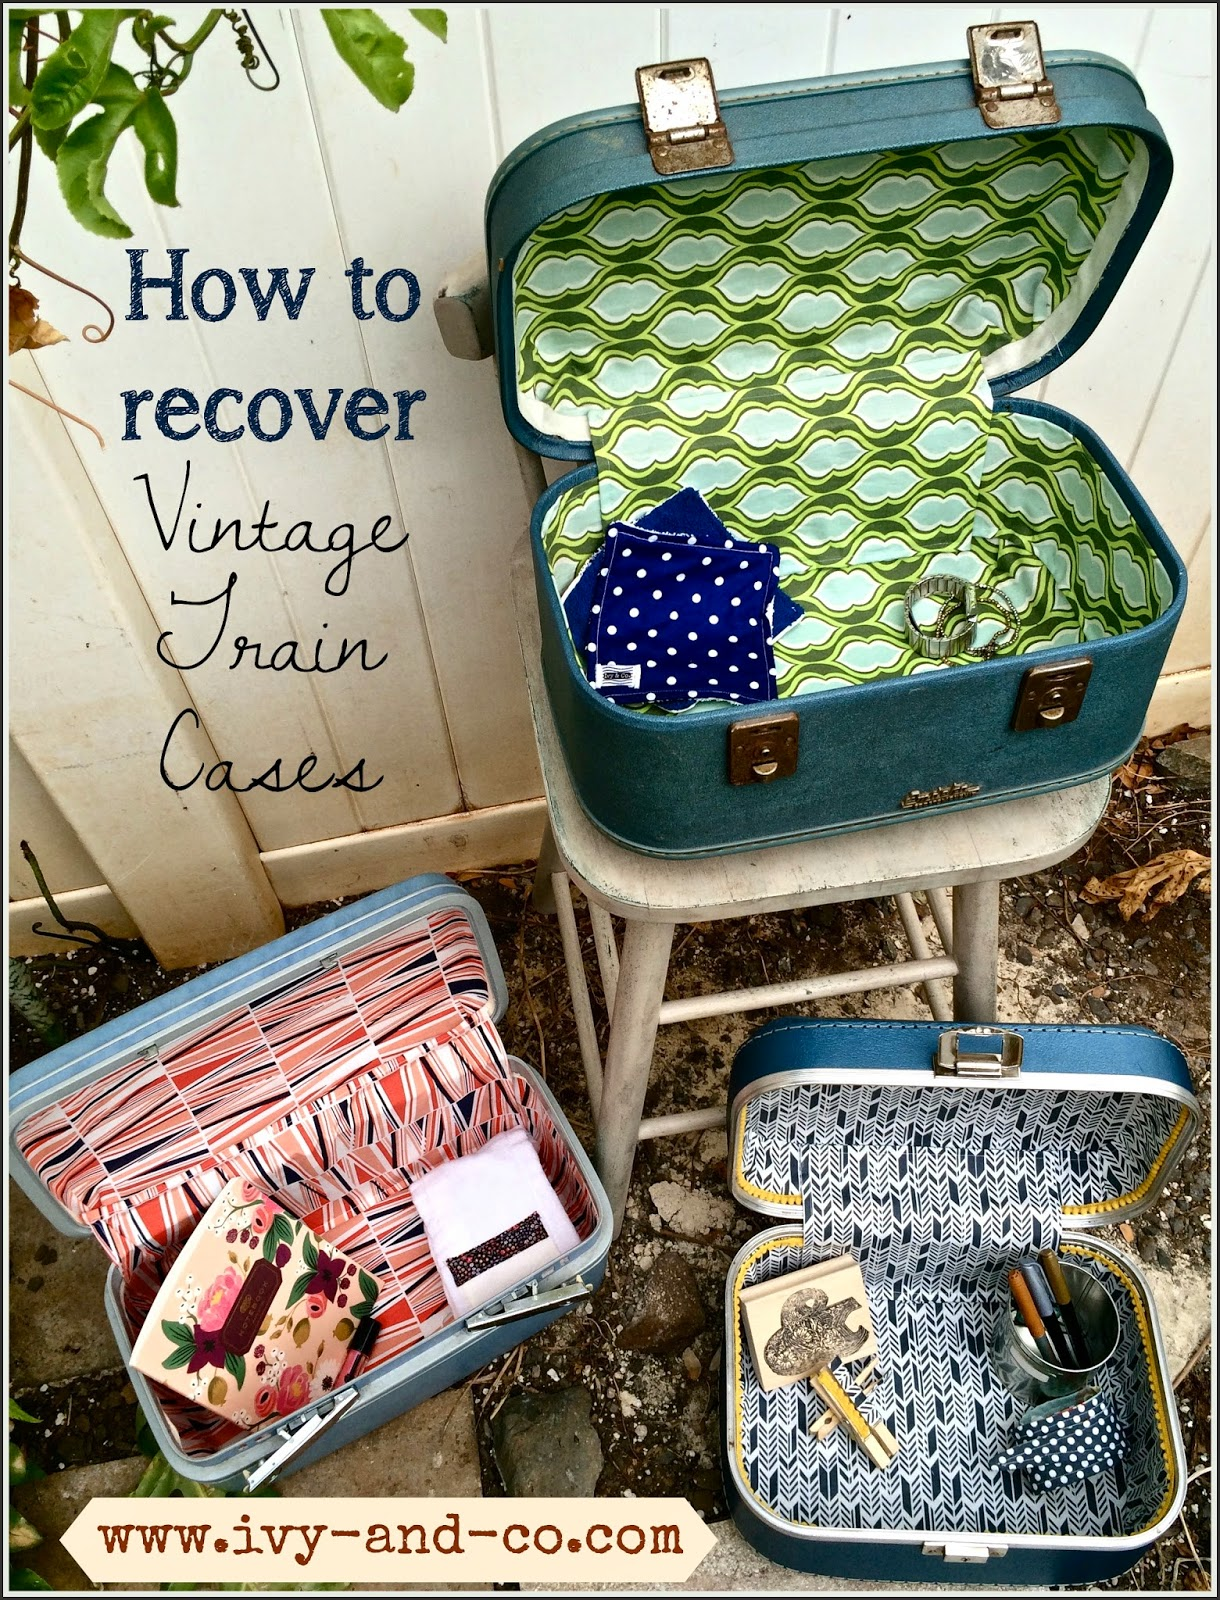 How to recover and clean a vintage train case - Ivy & Co.